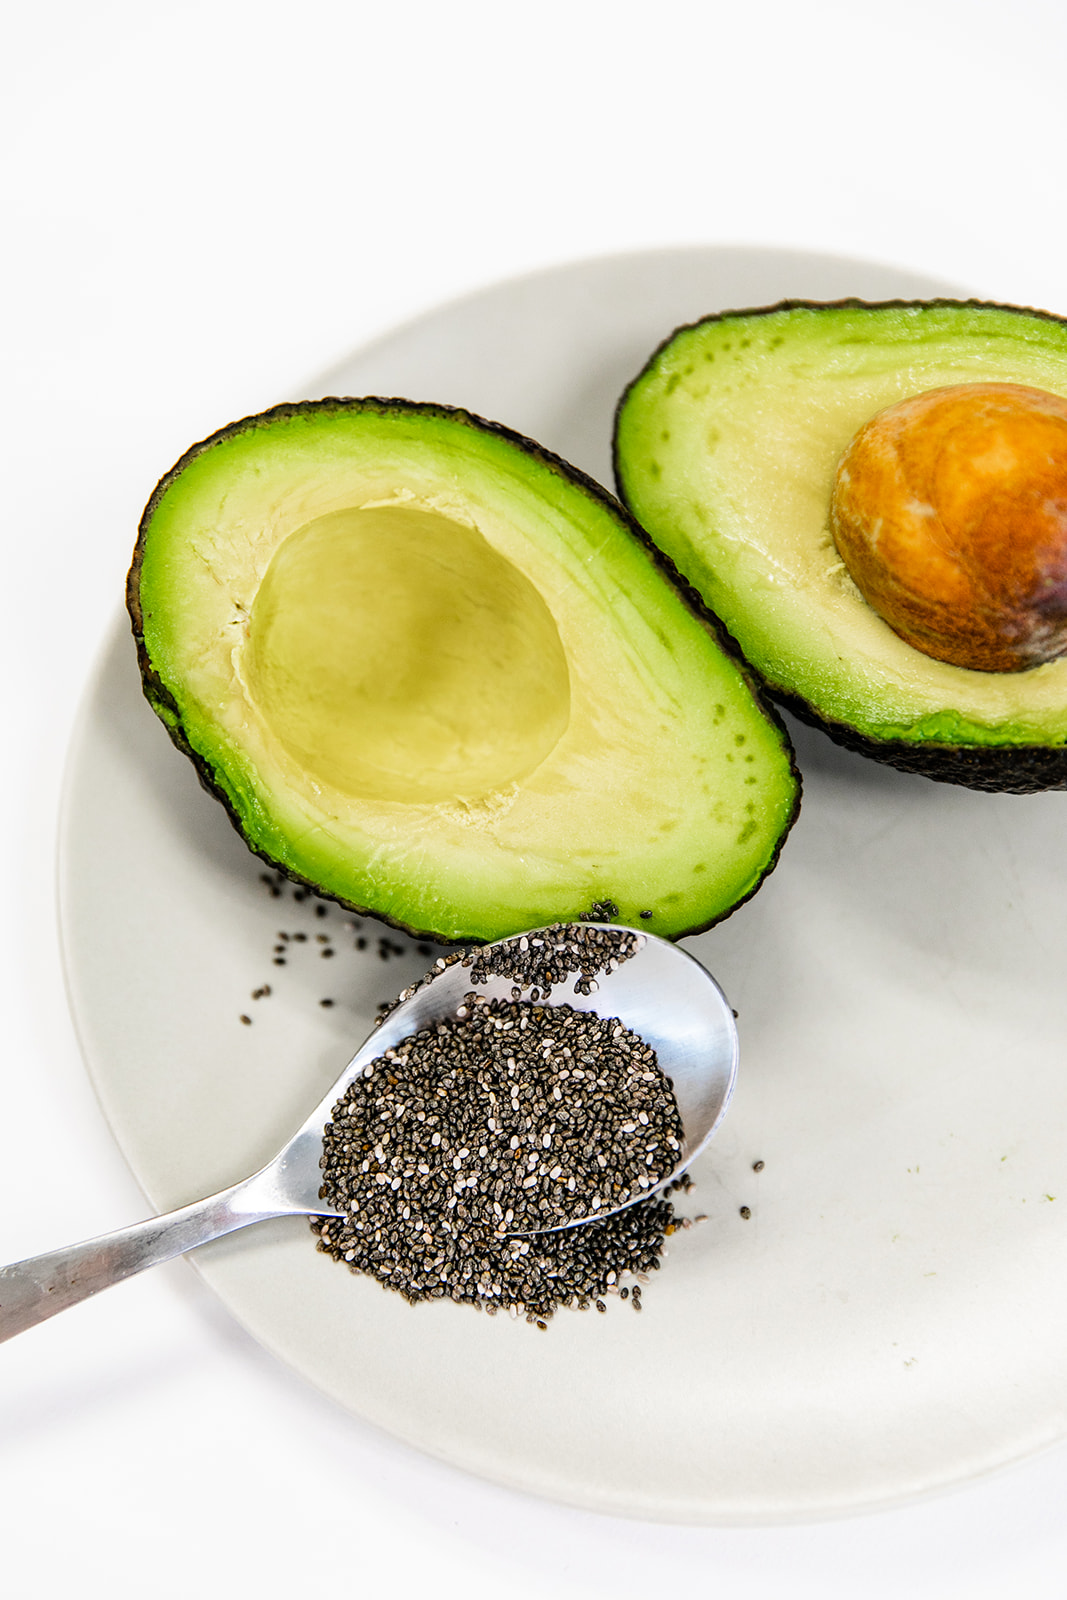 Avocados and Chia seeds for increased fertility